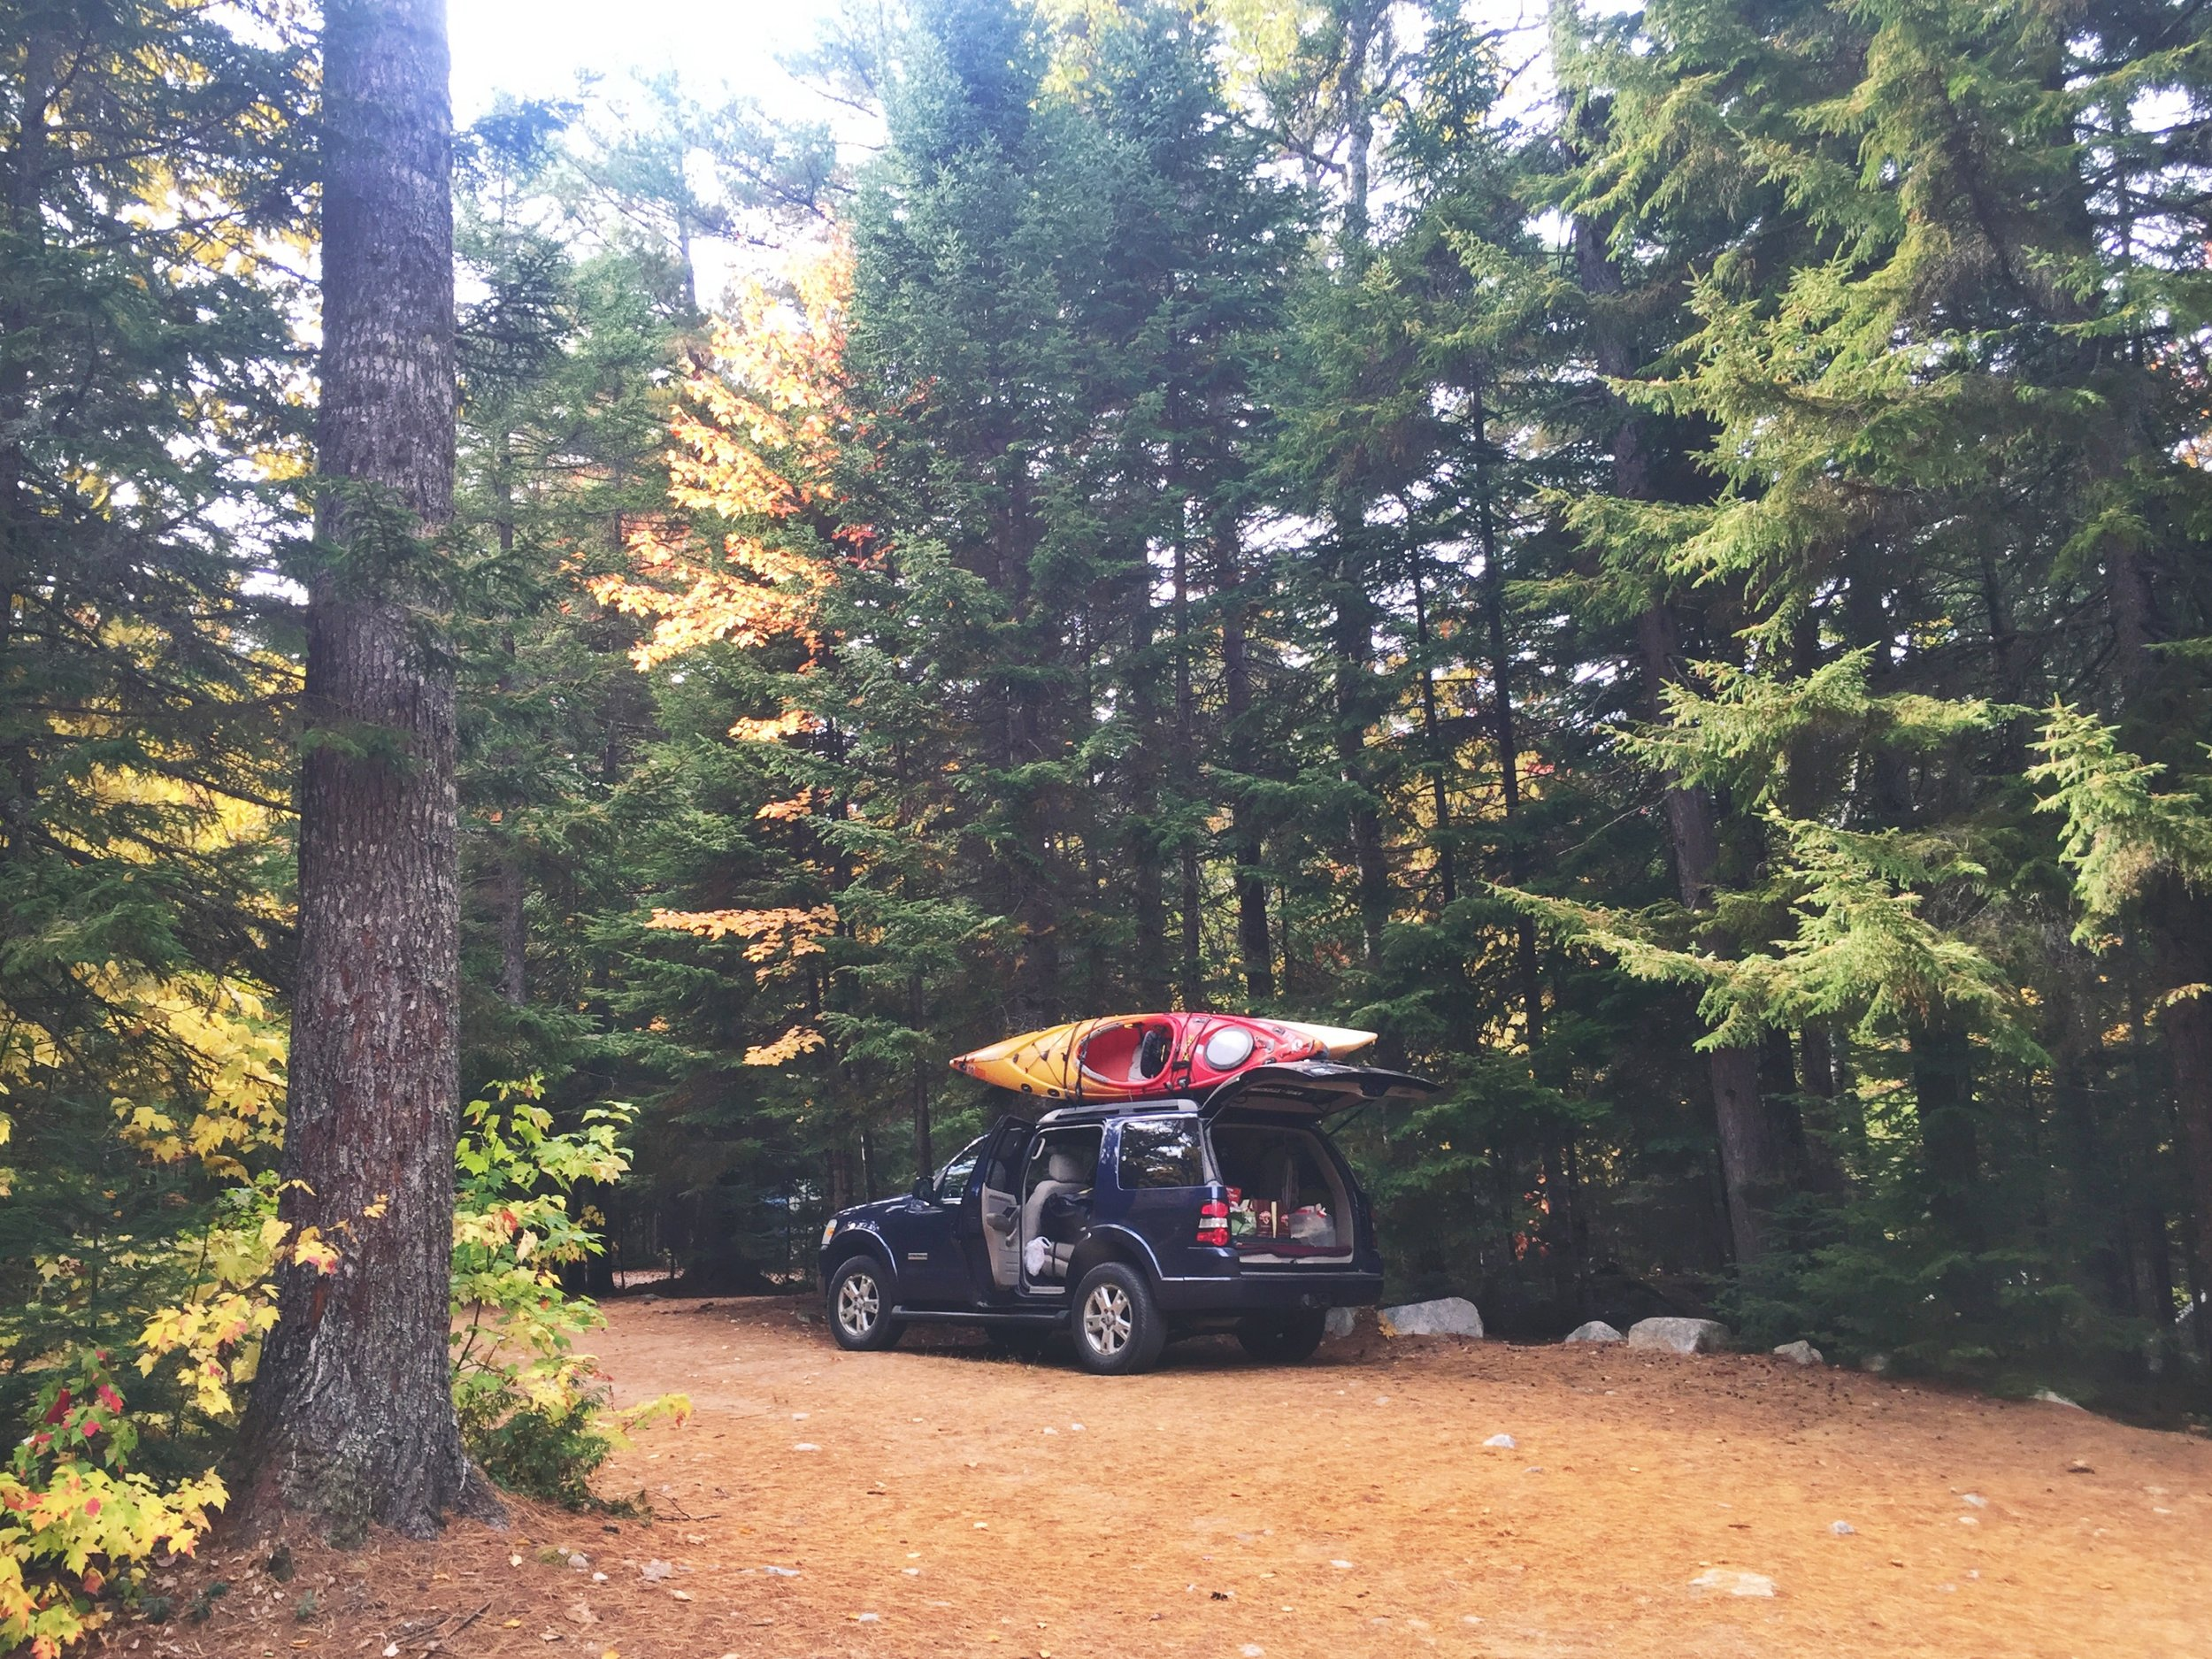 The trusty adventure vehicle at the campground